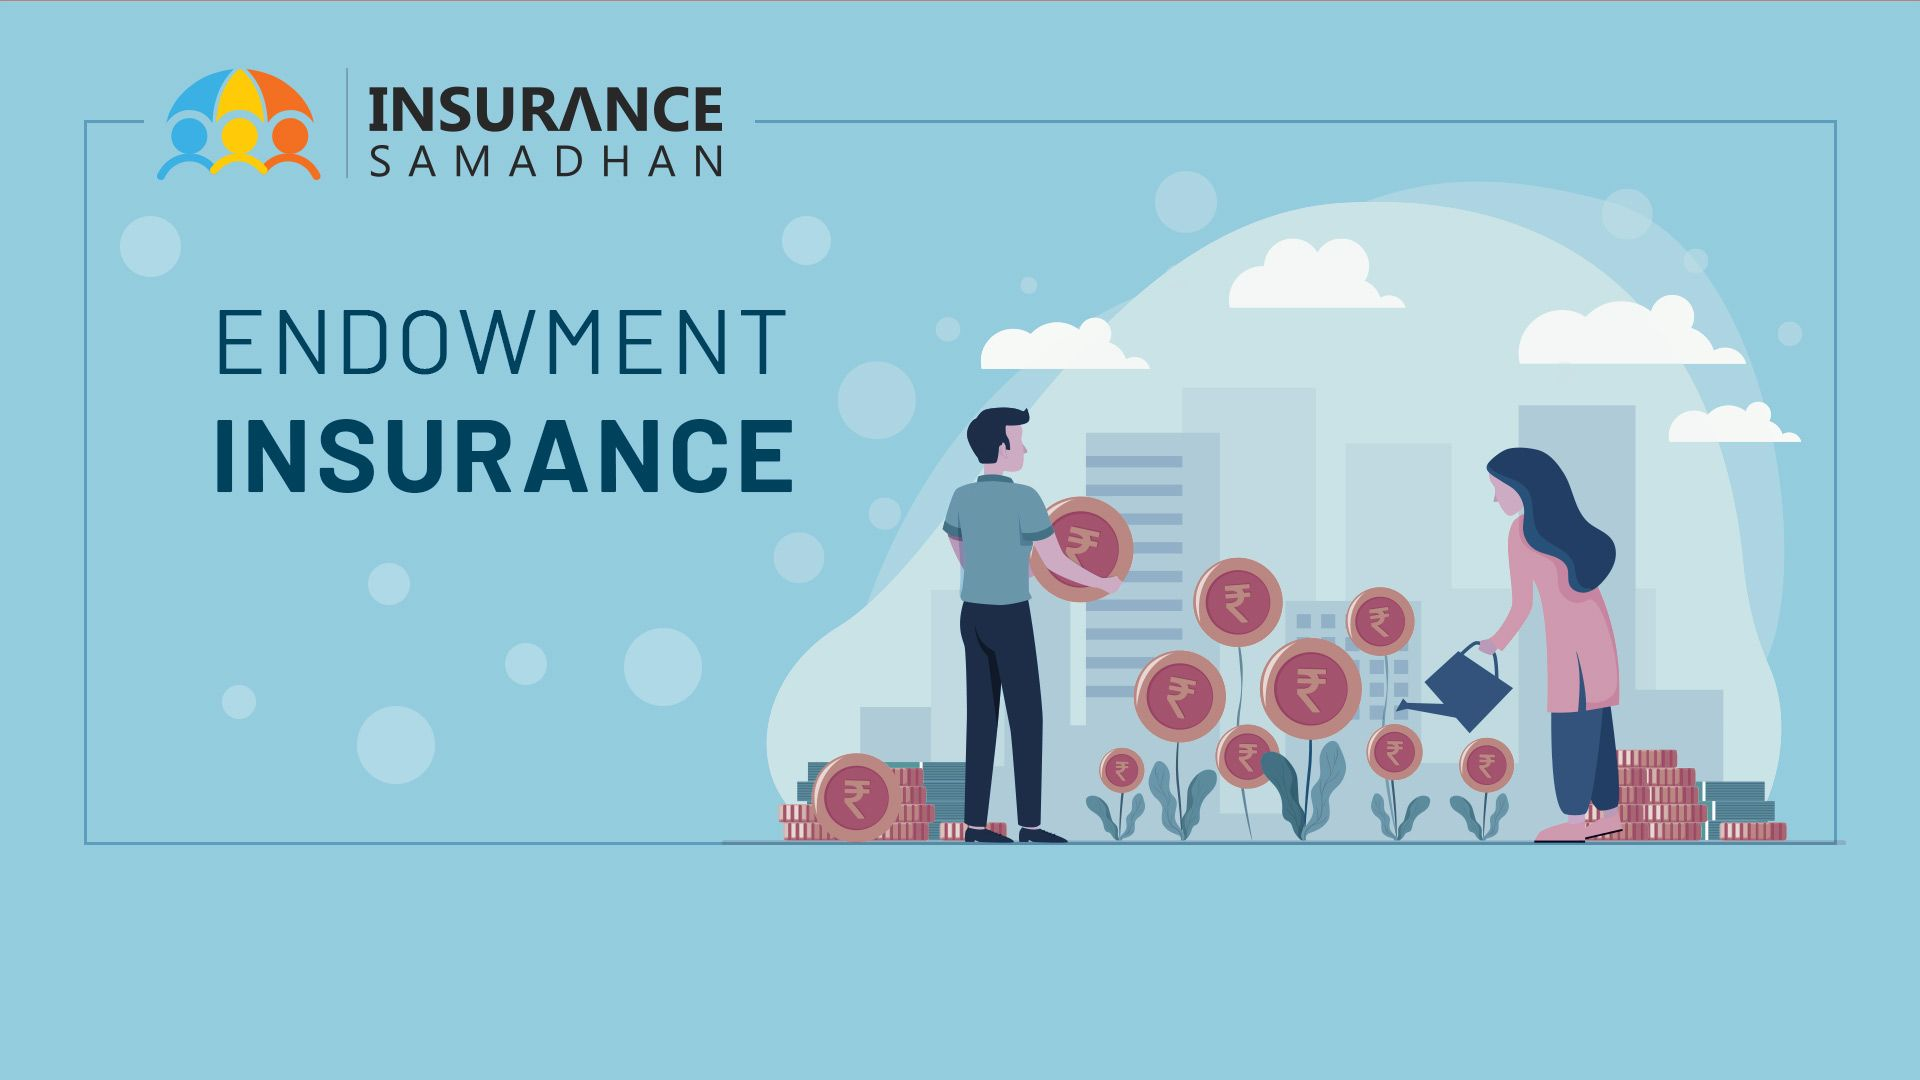 Endowment Insurance: Know about Endowment life Insurance Meaning, Features, Merits and Demerits